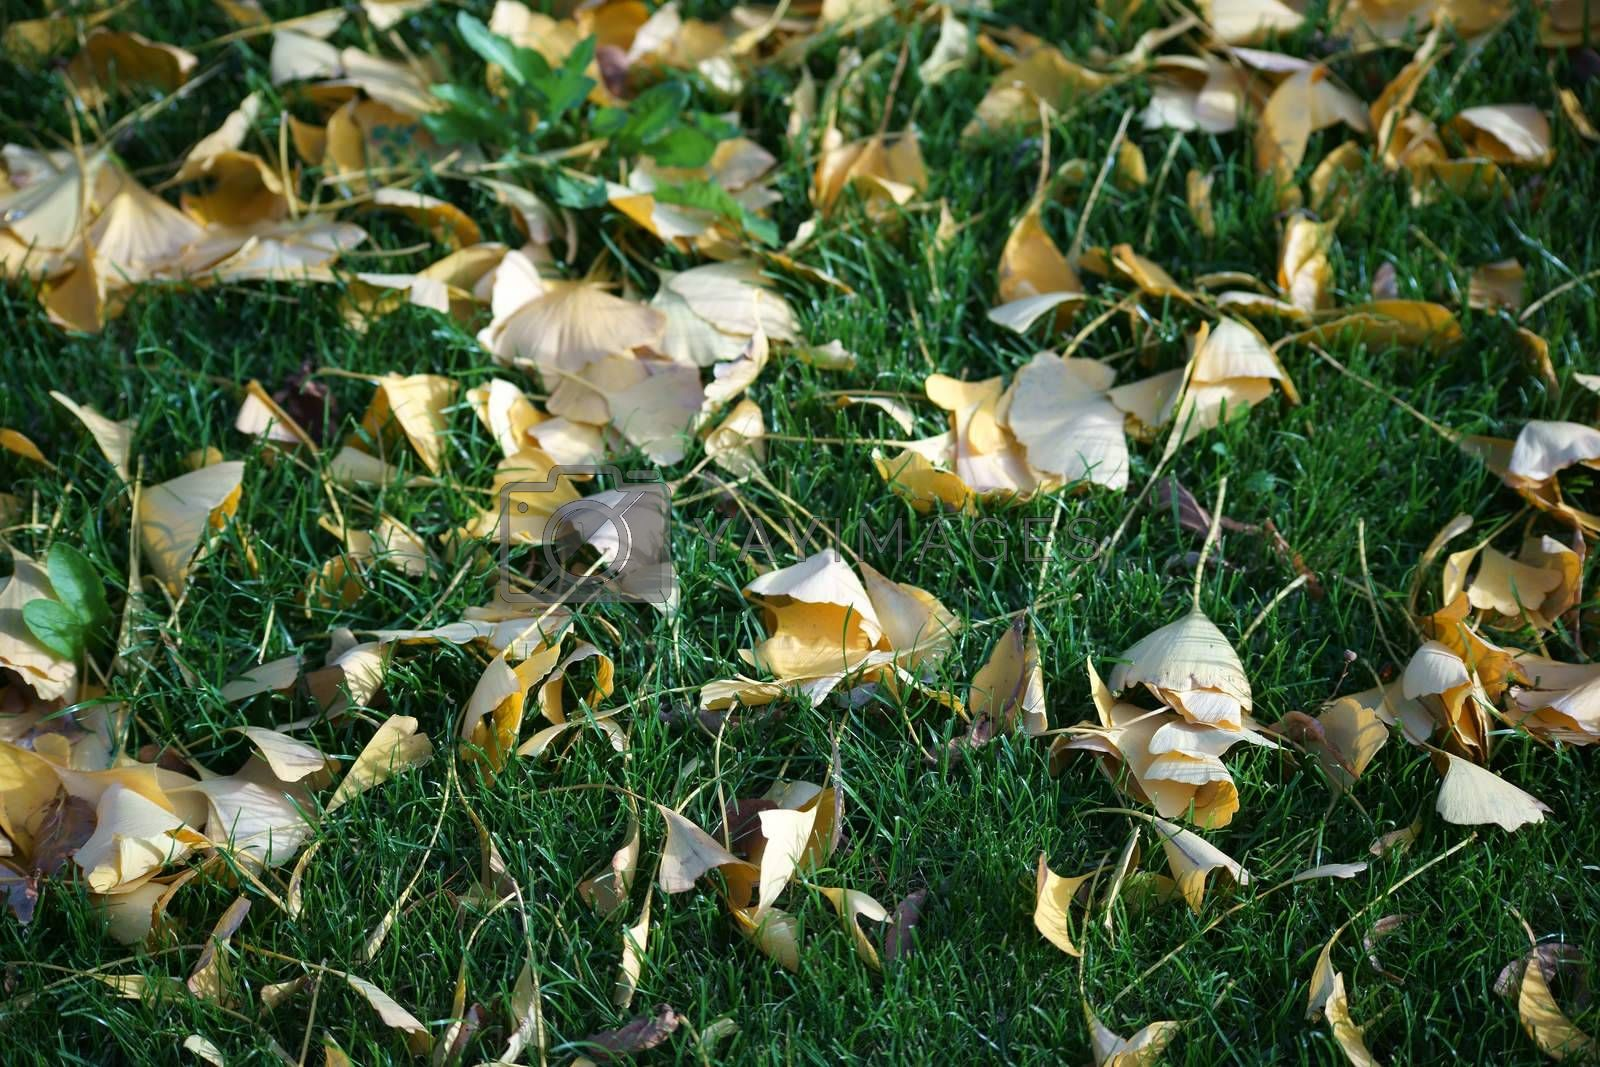 The fallen yellow leaves of the ginkgo tree in the green grass.